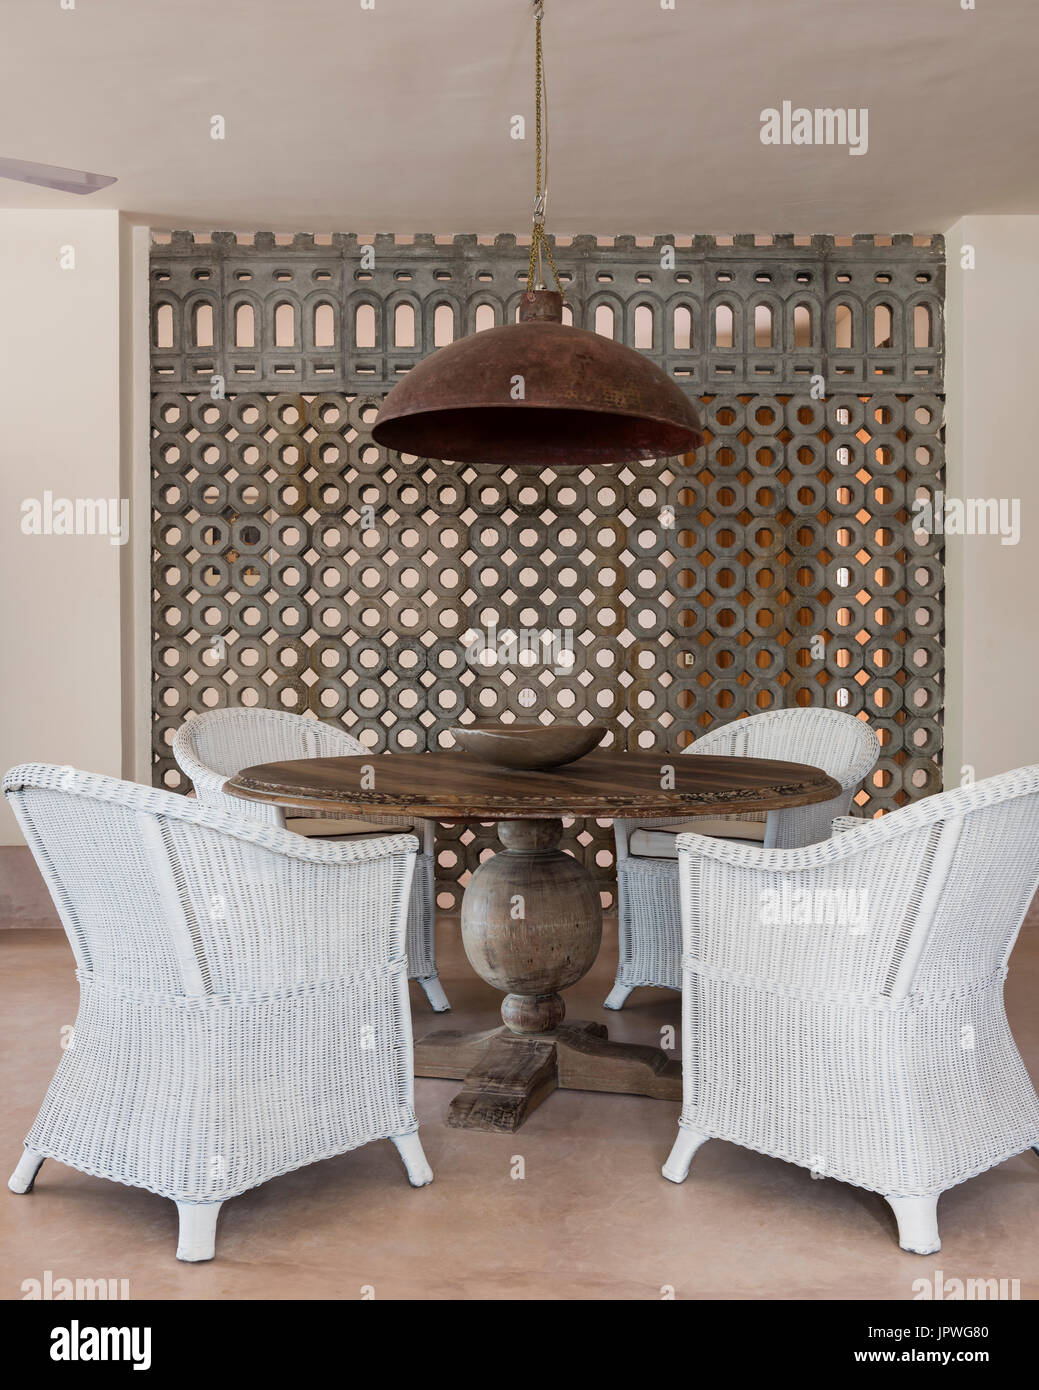 Wooden Dining Table With White Wicker Chairs Stock Photo Alamy